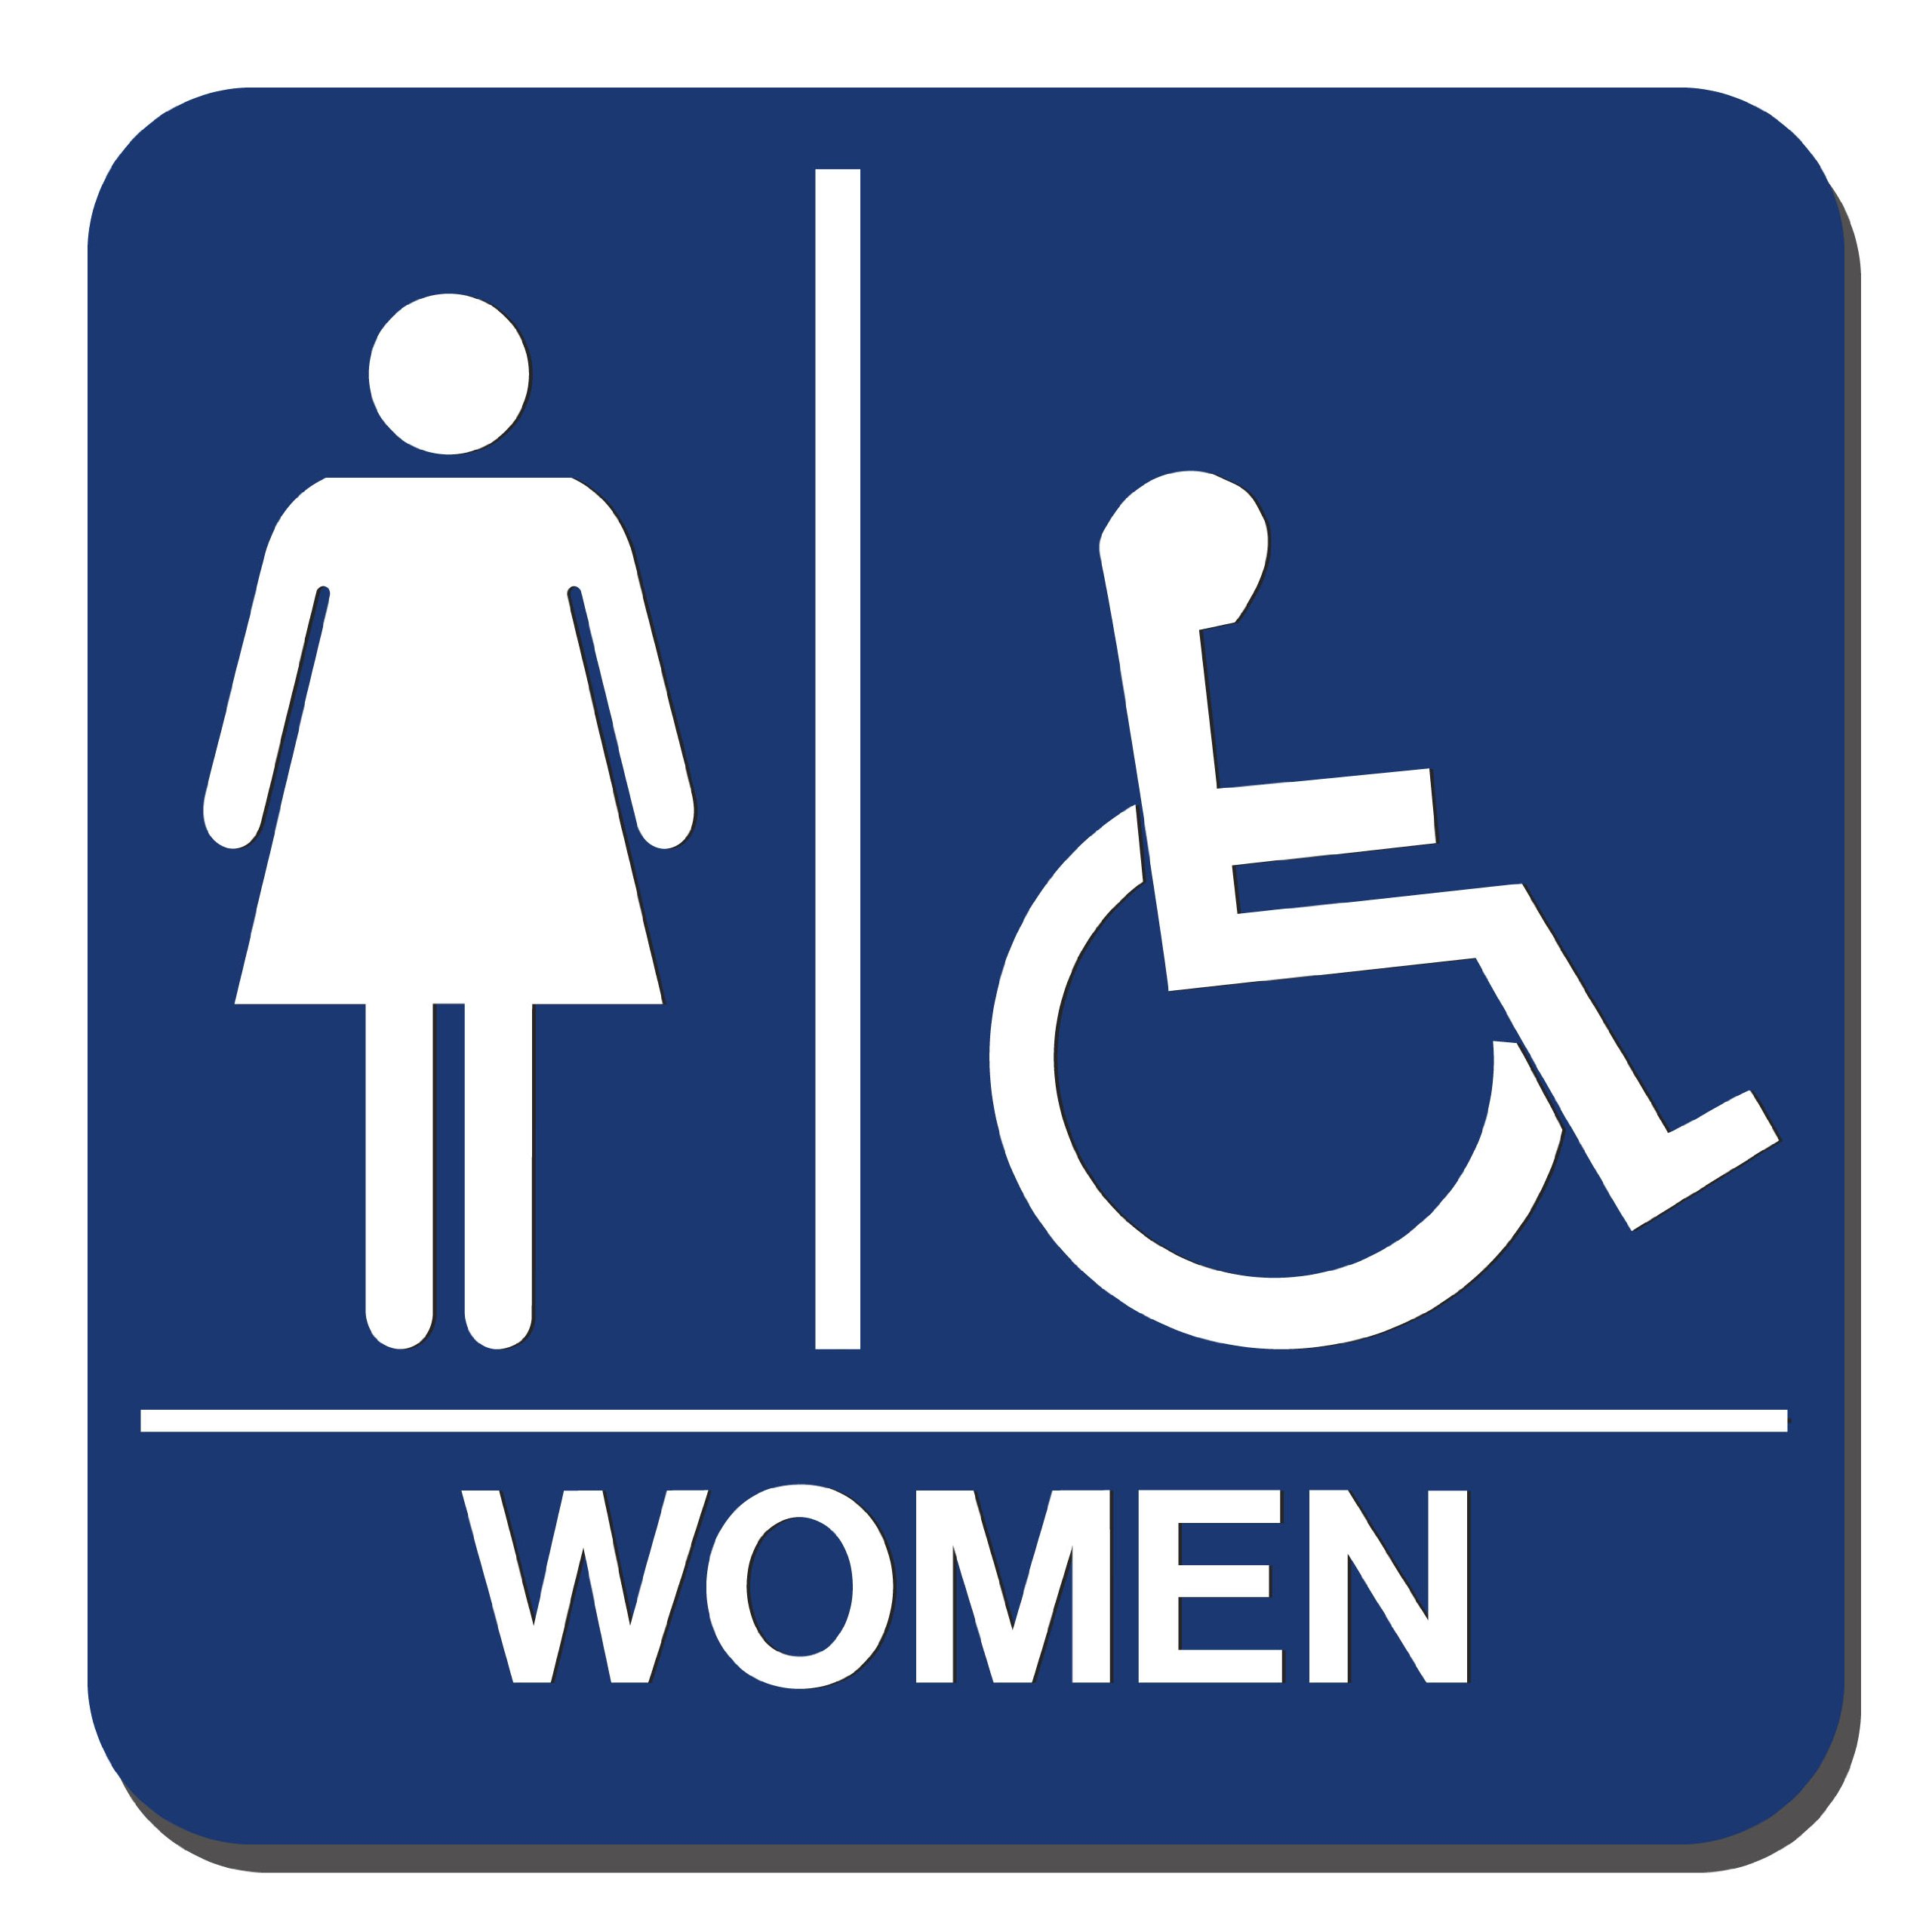 Lynch Signs 8 in. x 8 in. Sign Blue Plastic with Women Symbol and Accessible Symbol by Lynch Signs